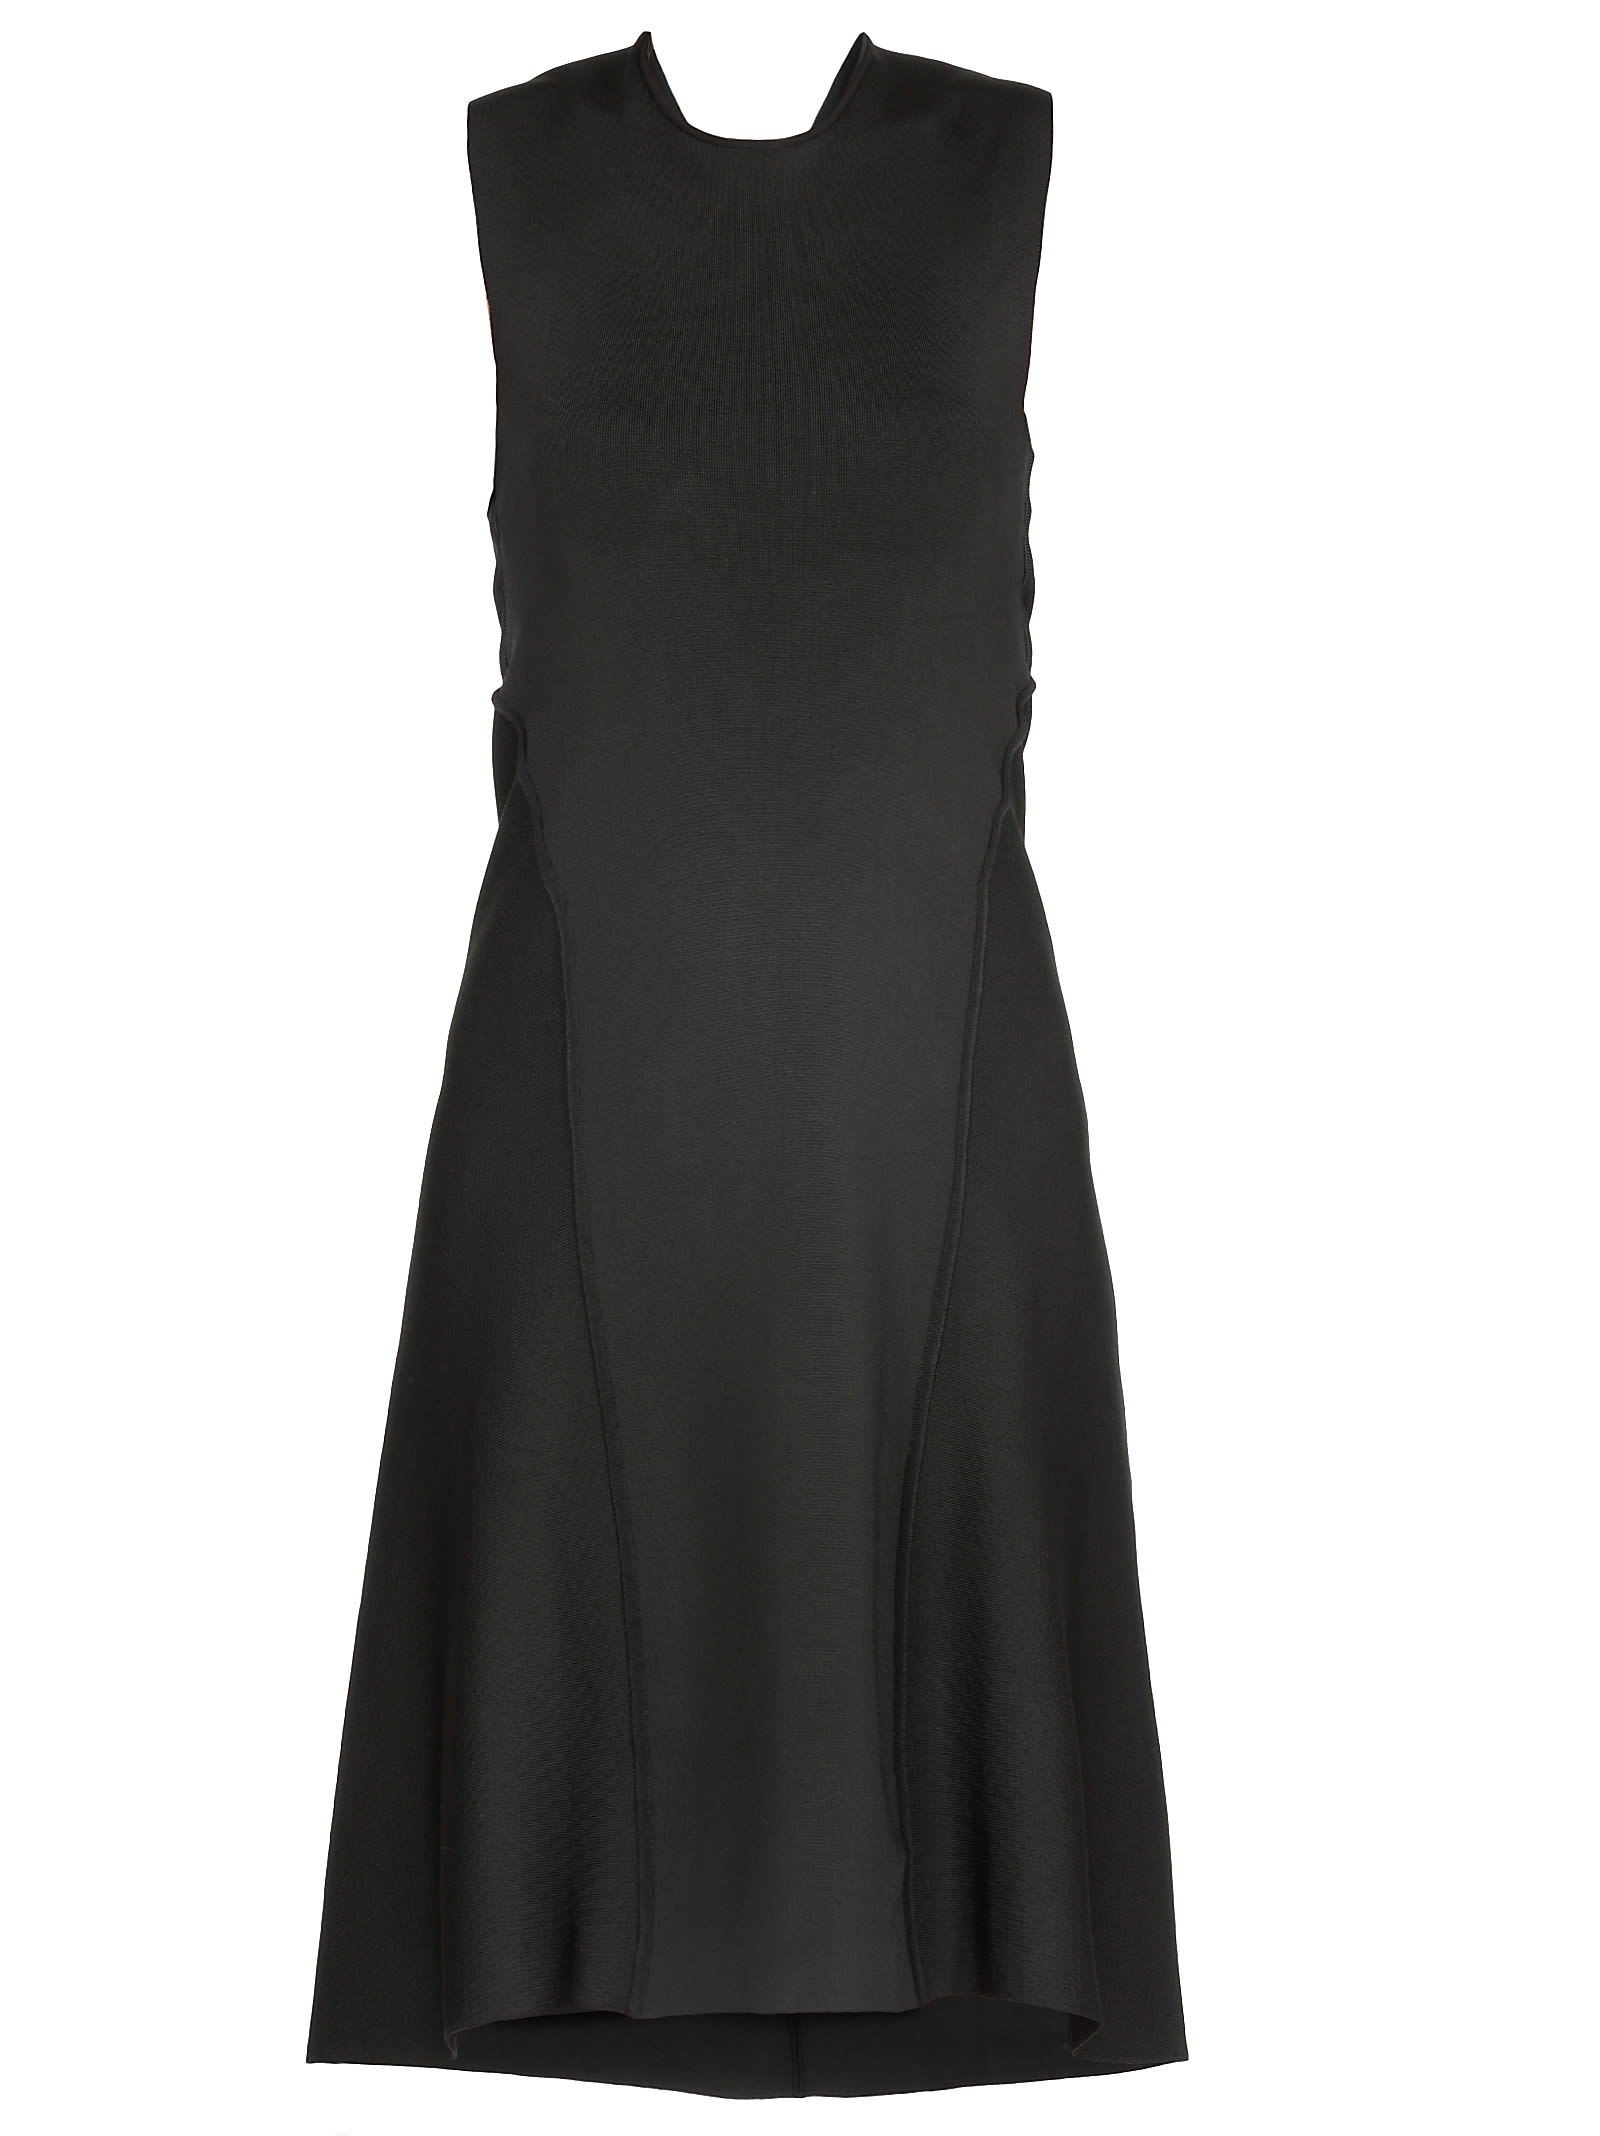 Victoria Beckham Cross Back Dress